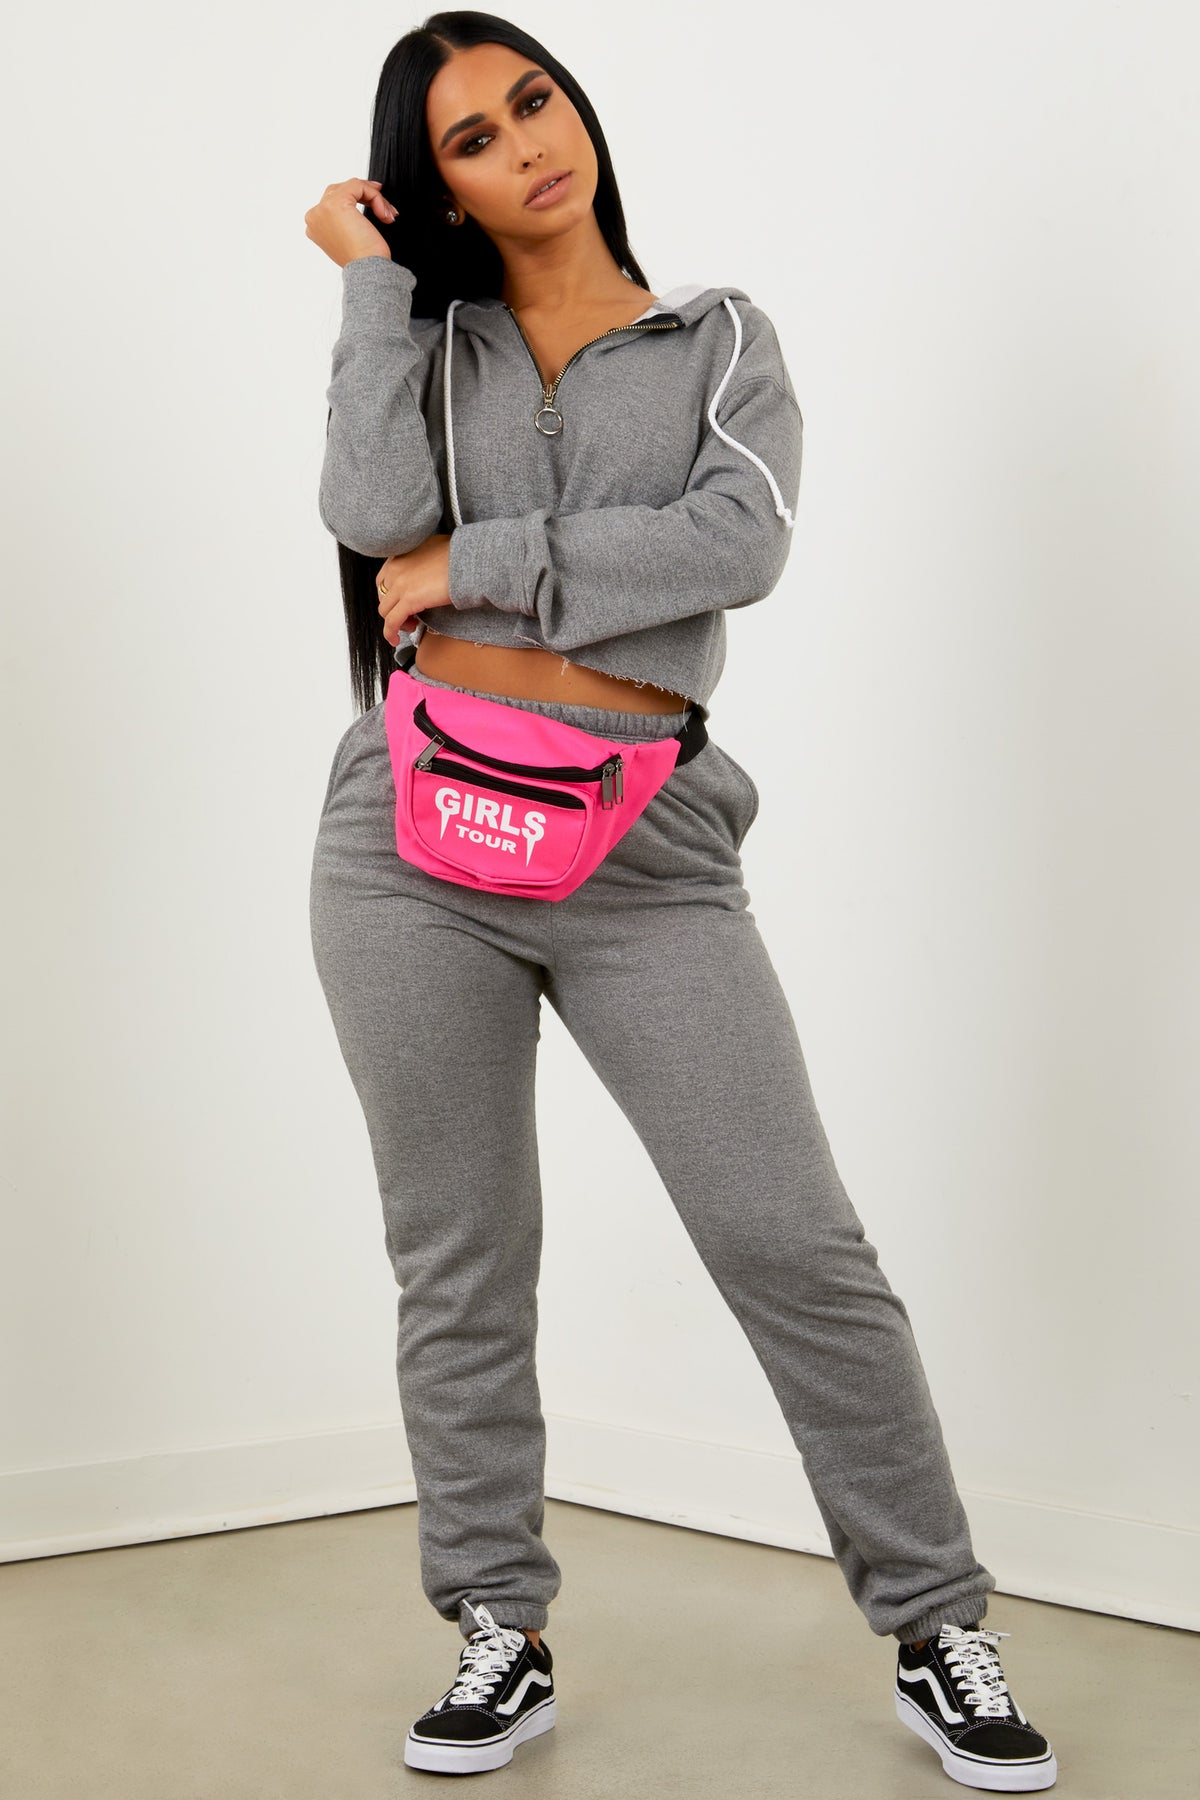 Girls Tour Fanny Pack Hot Pink